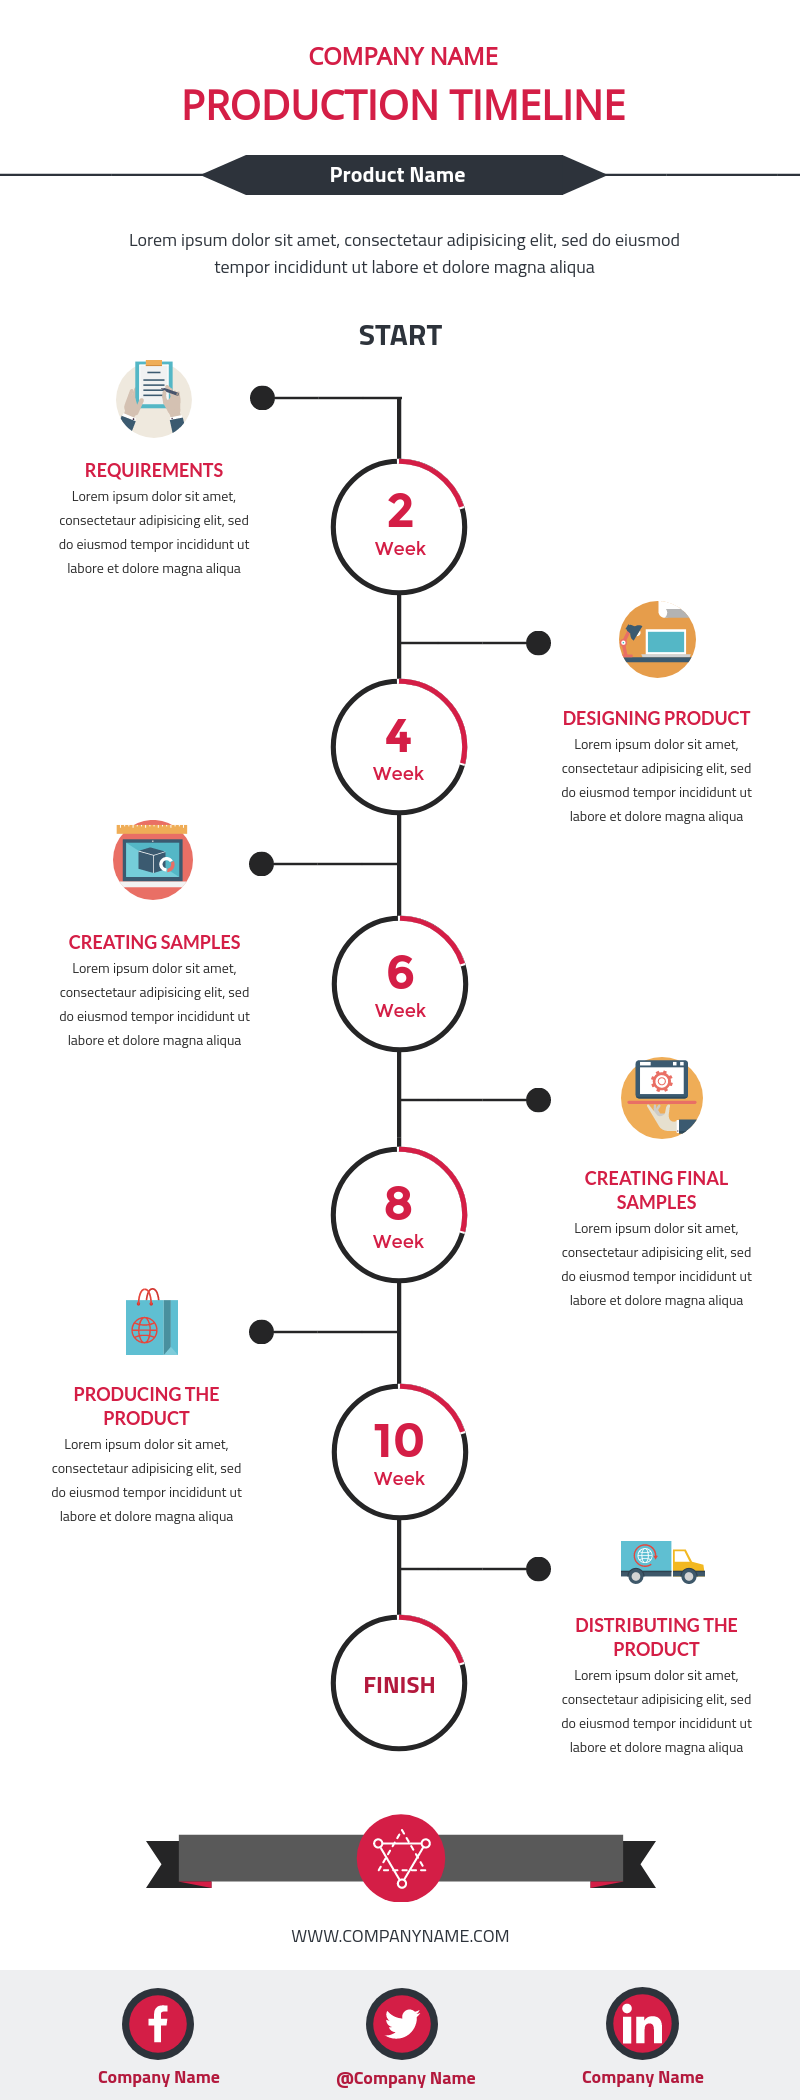 Production Timeline Infographic Template In Visme  Infographic